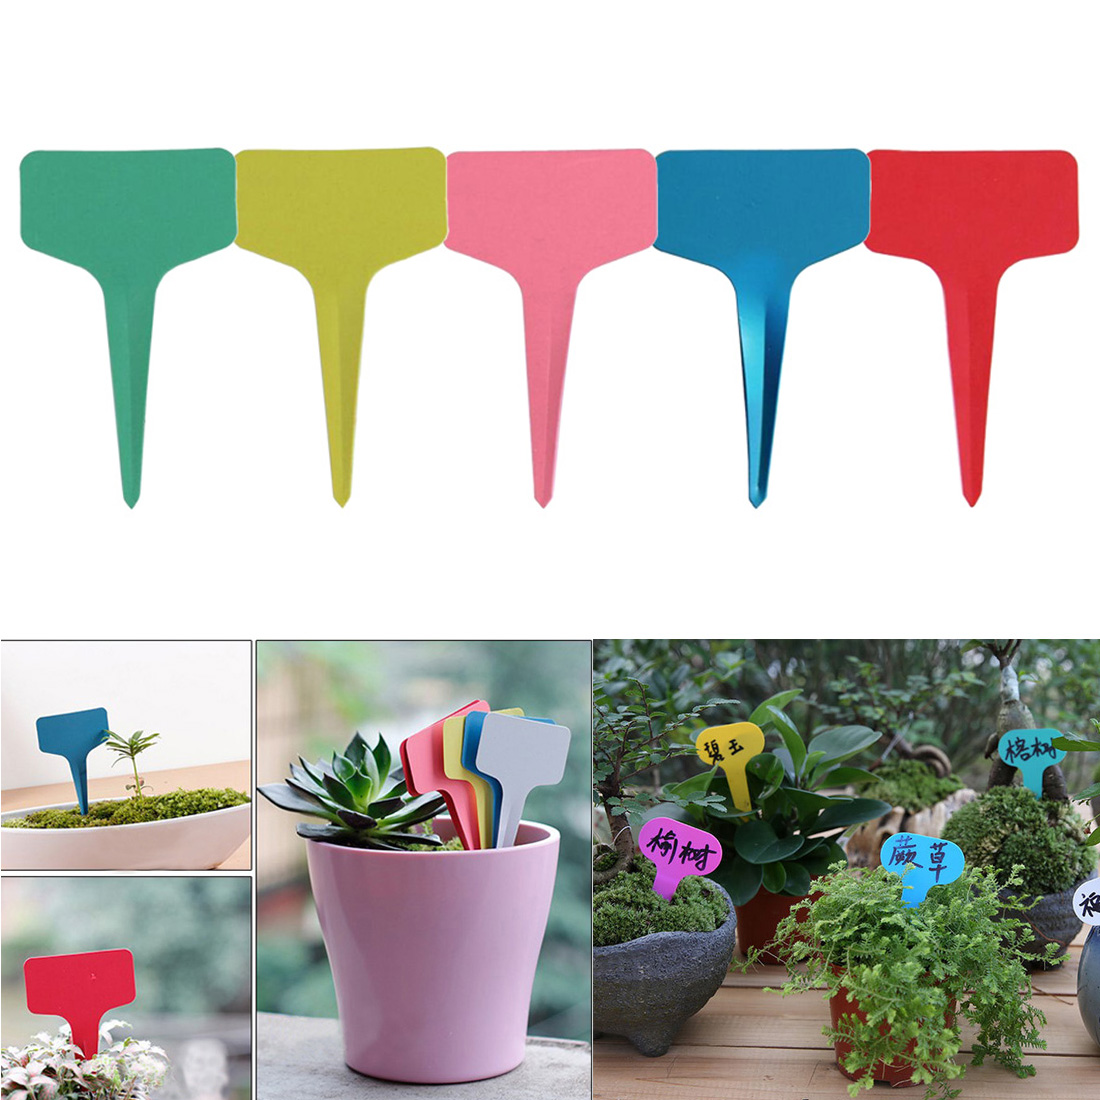 Garden Tools 20pcs Gardening Plant T Shape Waterproof Tags Flower Vegetable Planting Label Tools Farm Garden Seedling Tray Mark Garden Tools Pruning Tools